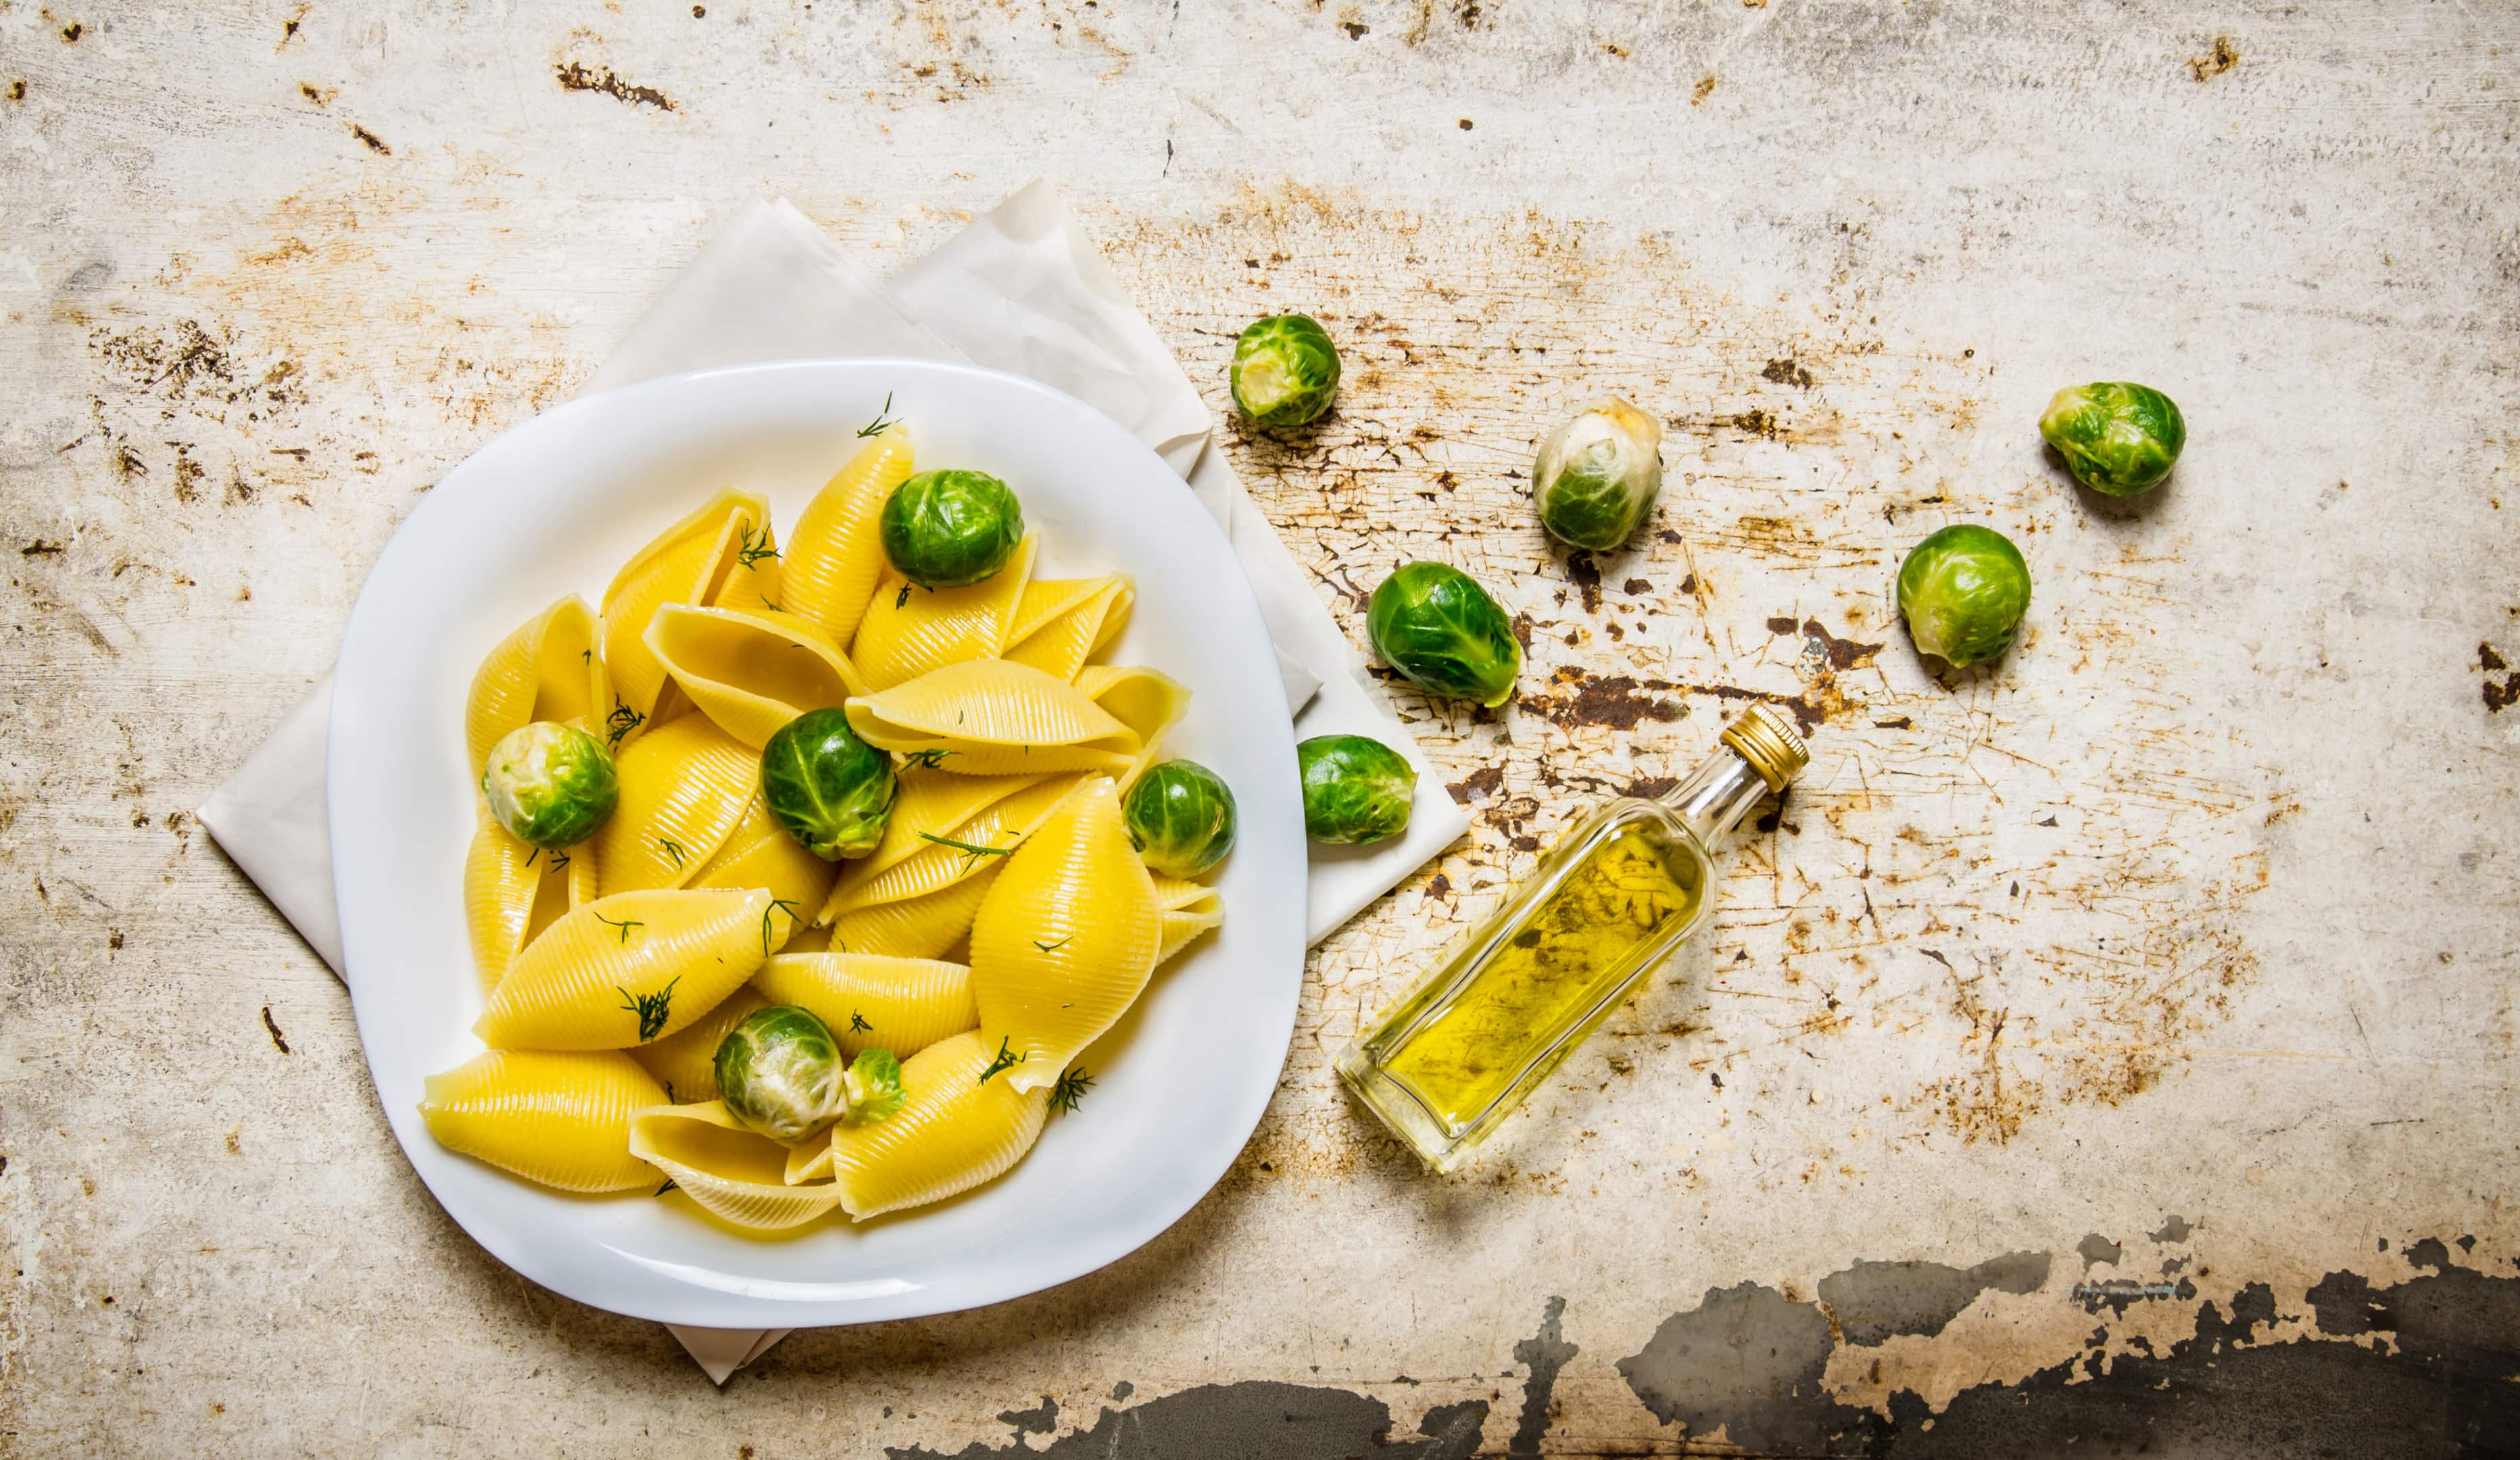 Cooked pasta with brussels sprouts on white plate with olive oil on rustic table